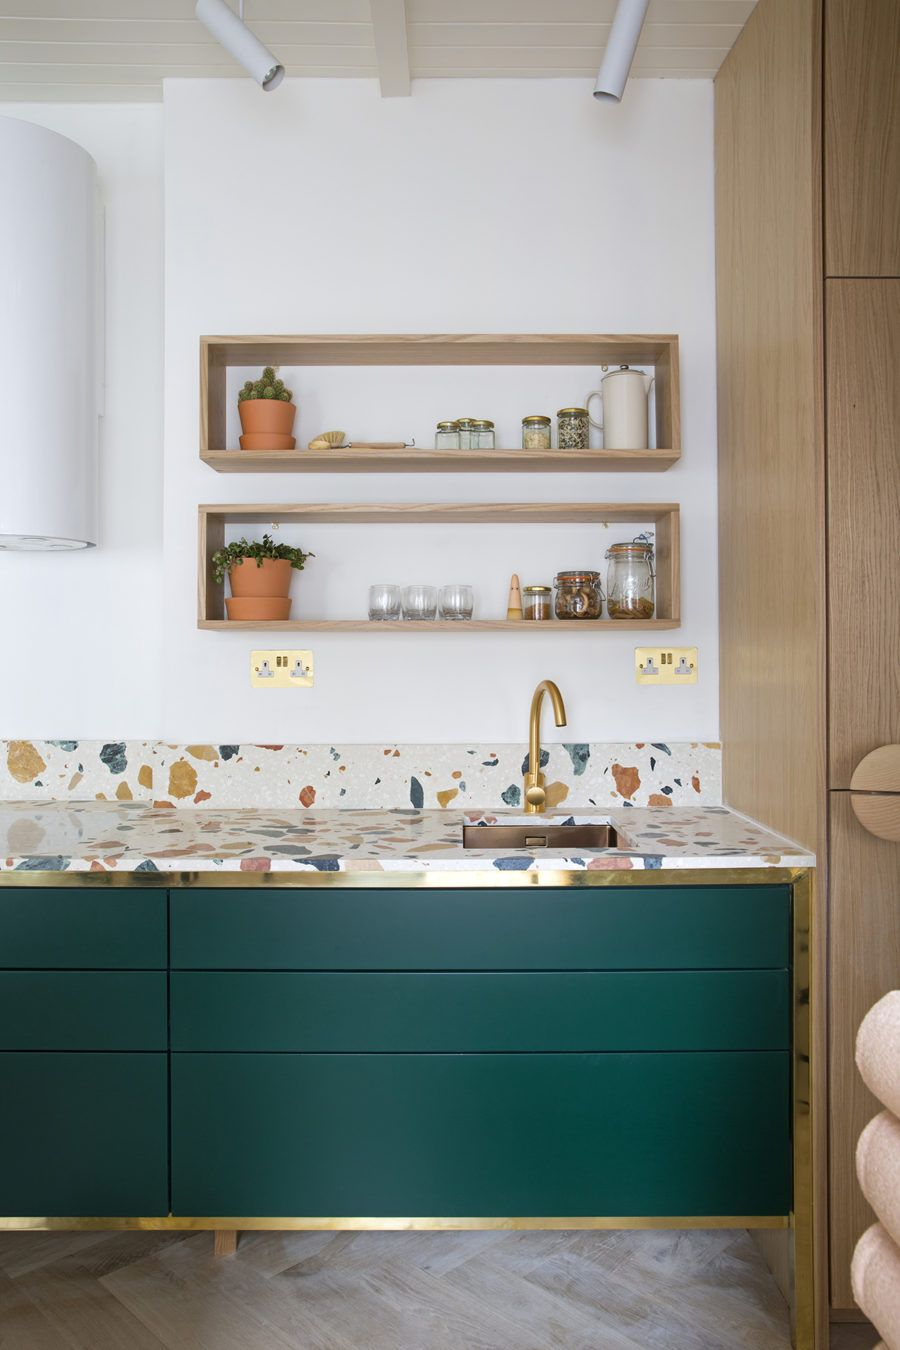 Küchenarbeitsplatte Farben What A Cool Countertop Brass Hardware Green Vanity Wow Wow